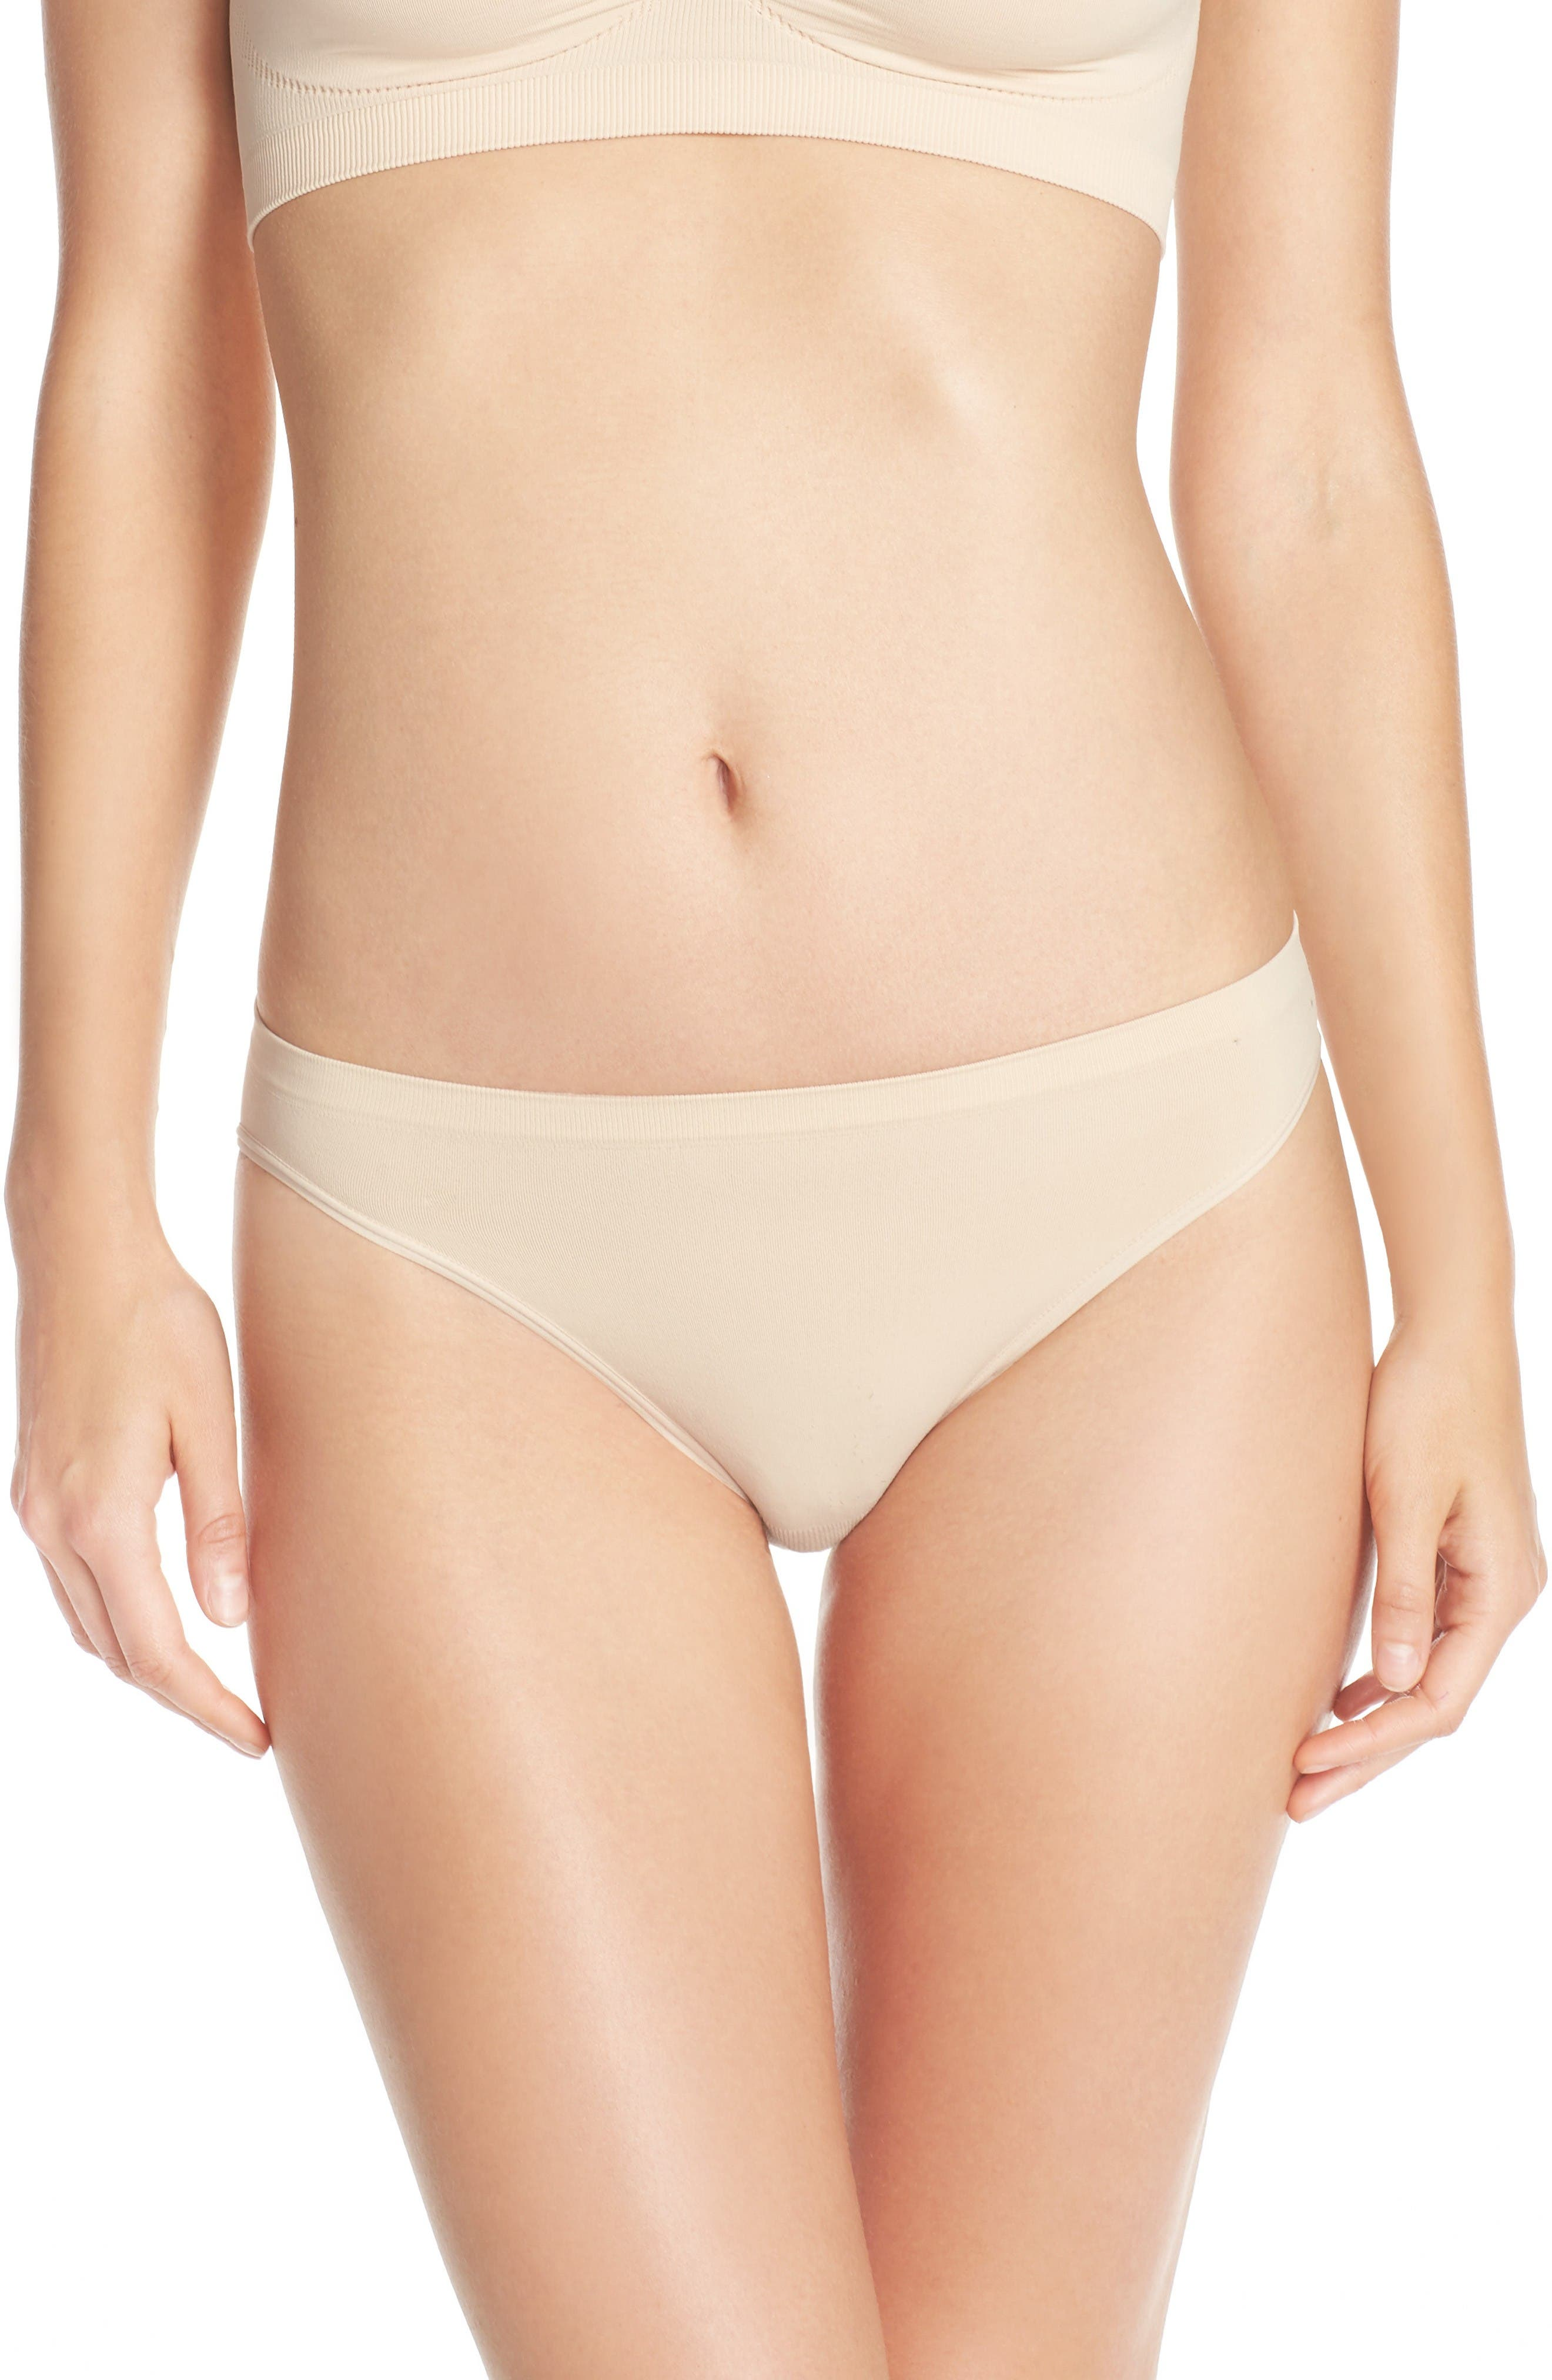 NORDSTROM LINGERIE Seamless High Cut Briefs